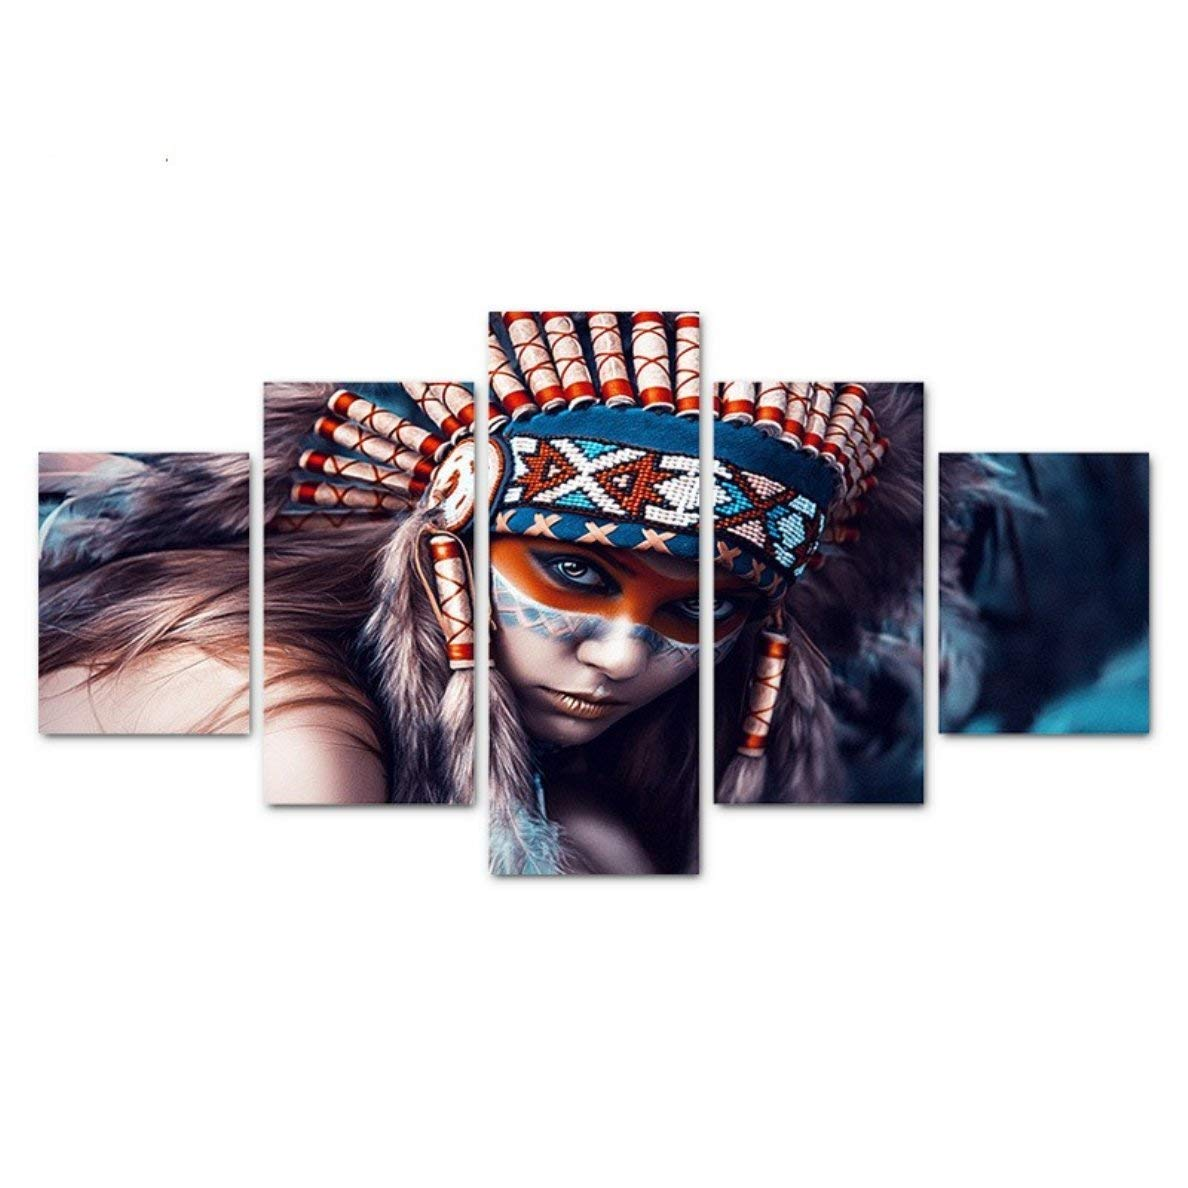 BE GOOD 5 Panel Wall Art Set Native Indian Girl Contemporary Oil Painting Canvas Prints Modern Home Decoration for Living Room Bedroom or Hotel Office Decor Gift Piece